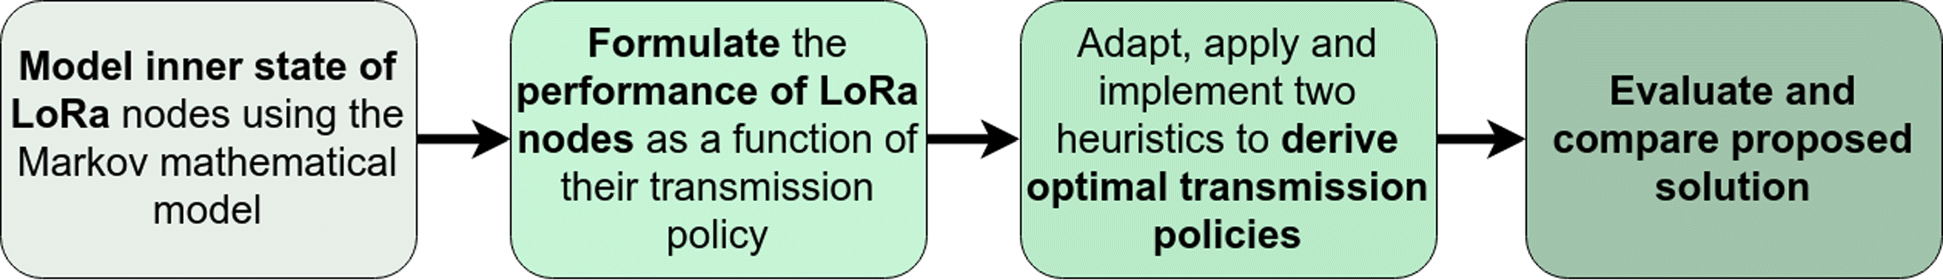 Performance optimization of LoRa nodes for the future smart